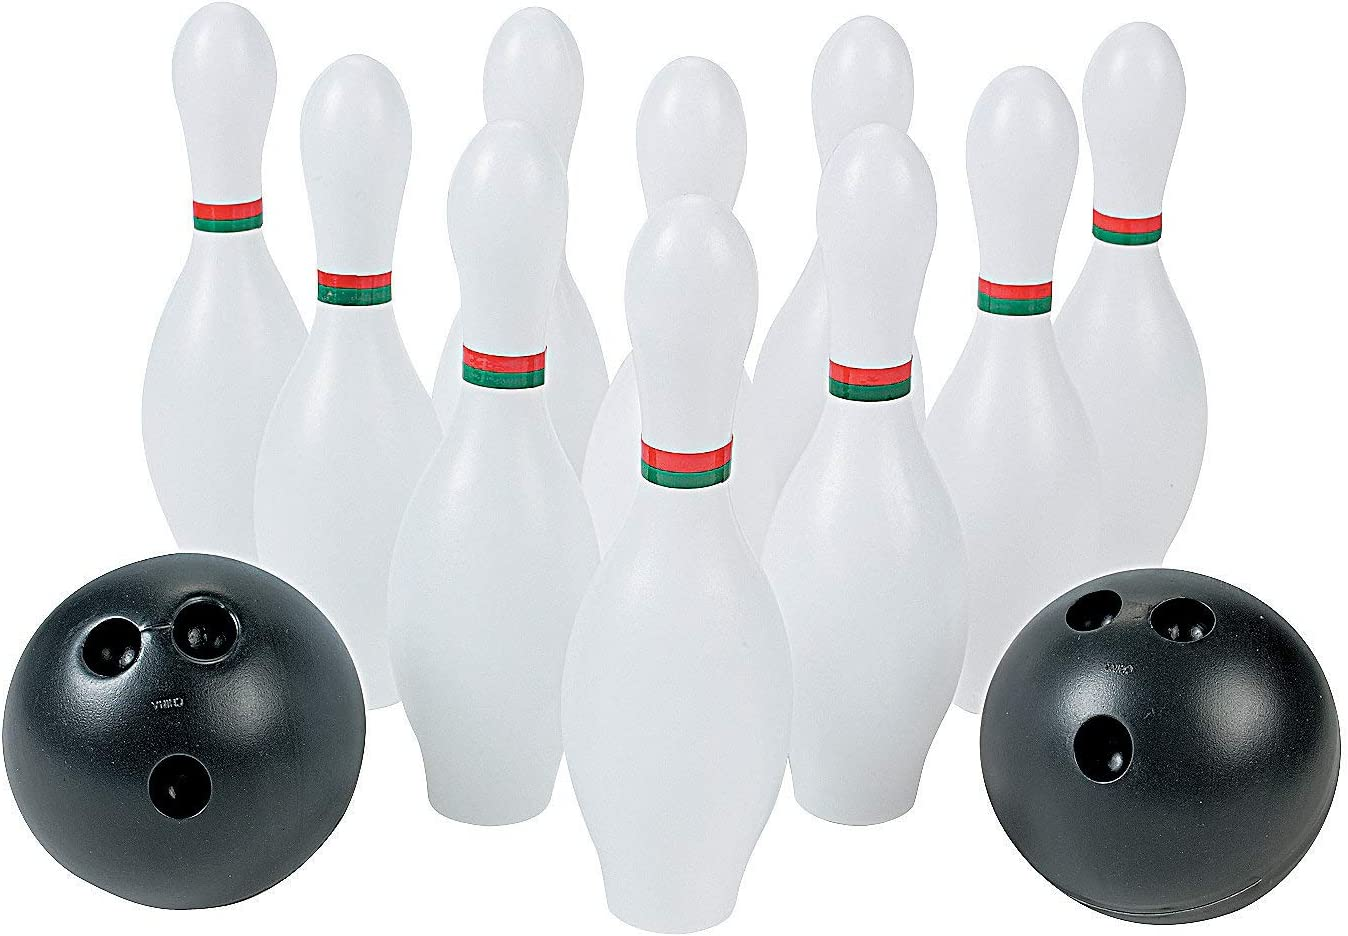 Fun Express - Bowling Set (12pc) - Toys - Games - Indoor & Mini Game Sets - 1 Piece